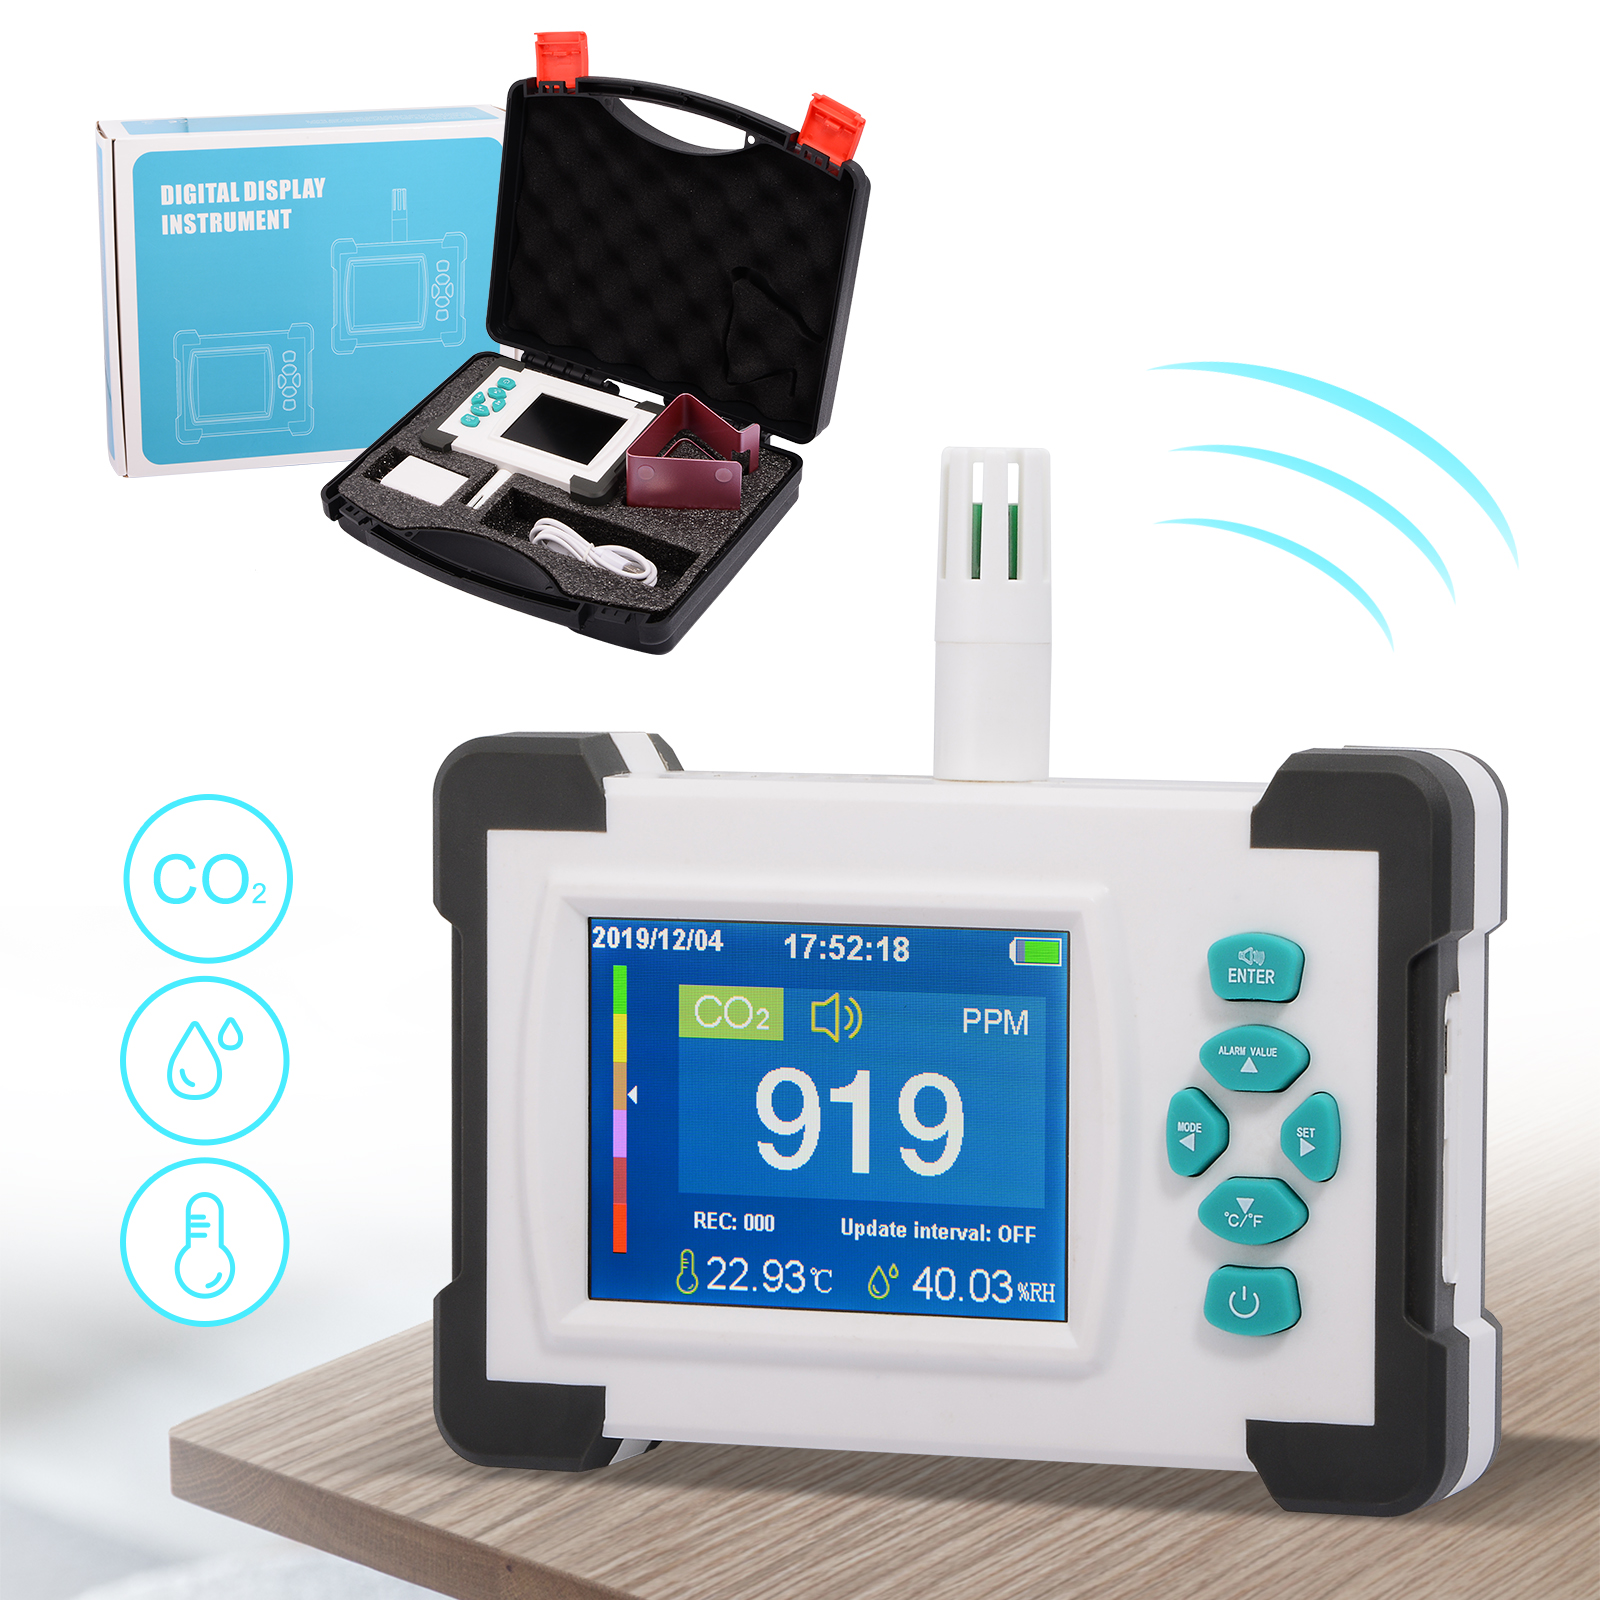 FOSHIO Carbon Dioxide Detector Meter Portable CO2 Monitor Sensor Air Quality Monitor Public Industrial Agriculture Gas Air Meter